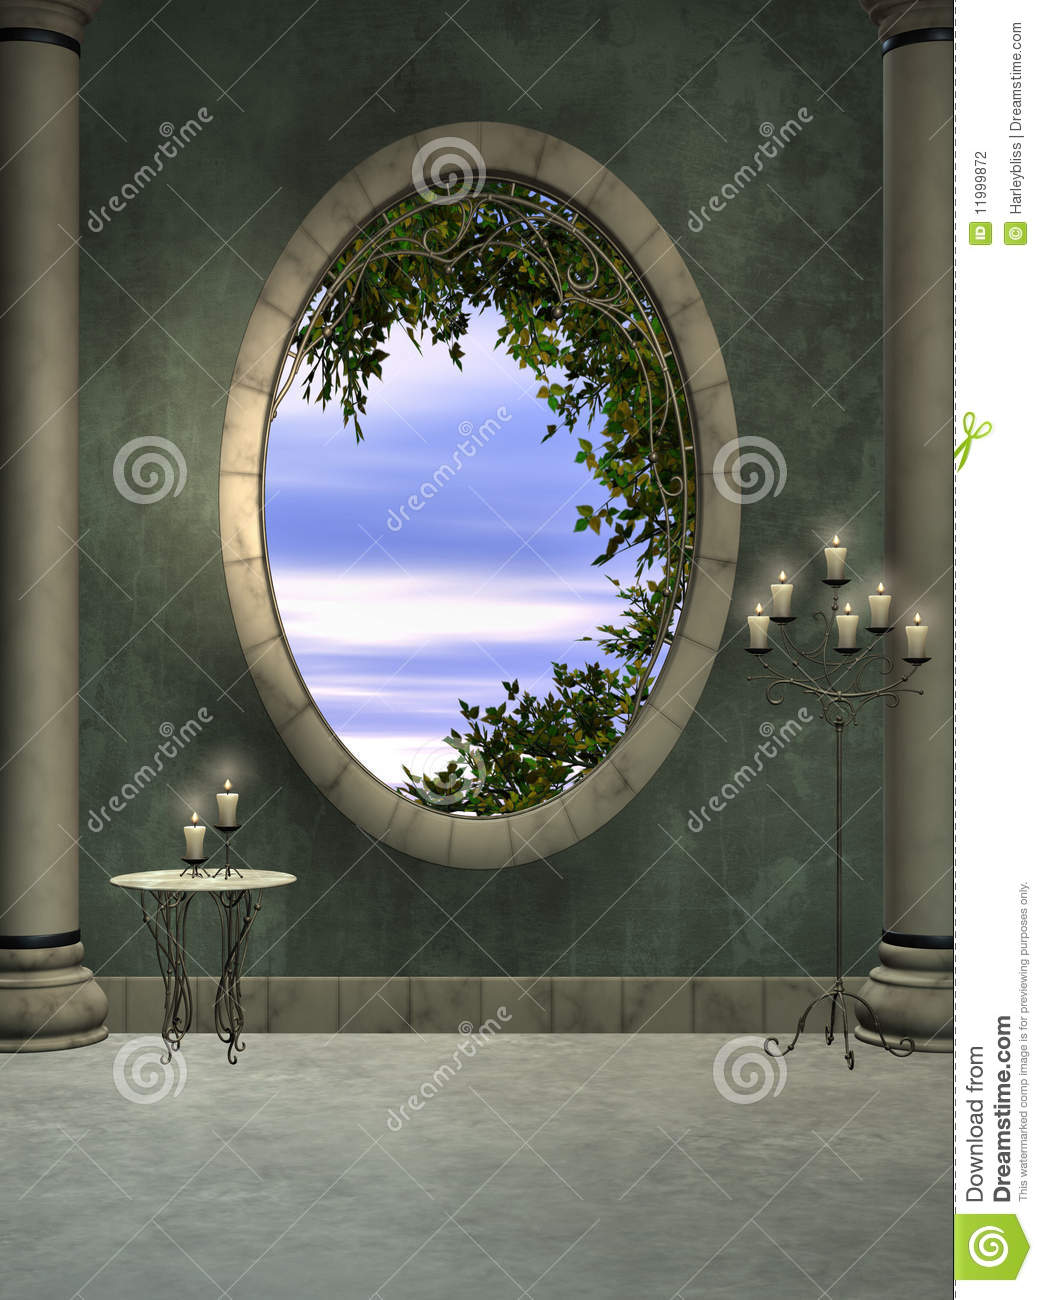 Foyer Window Cost : Foyer and window stock photography image